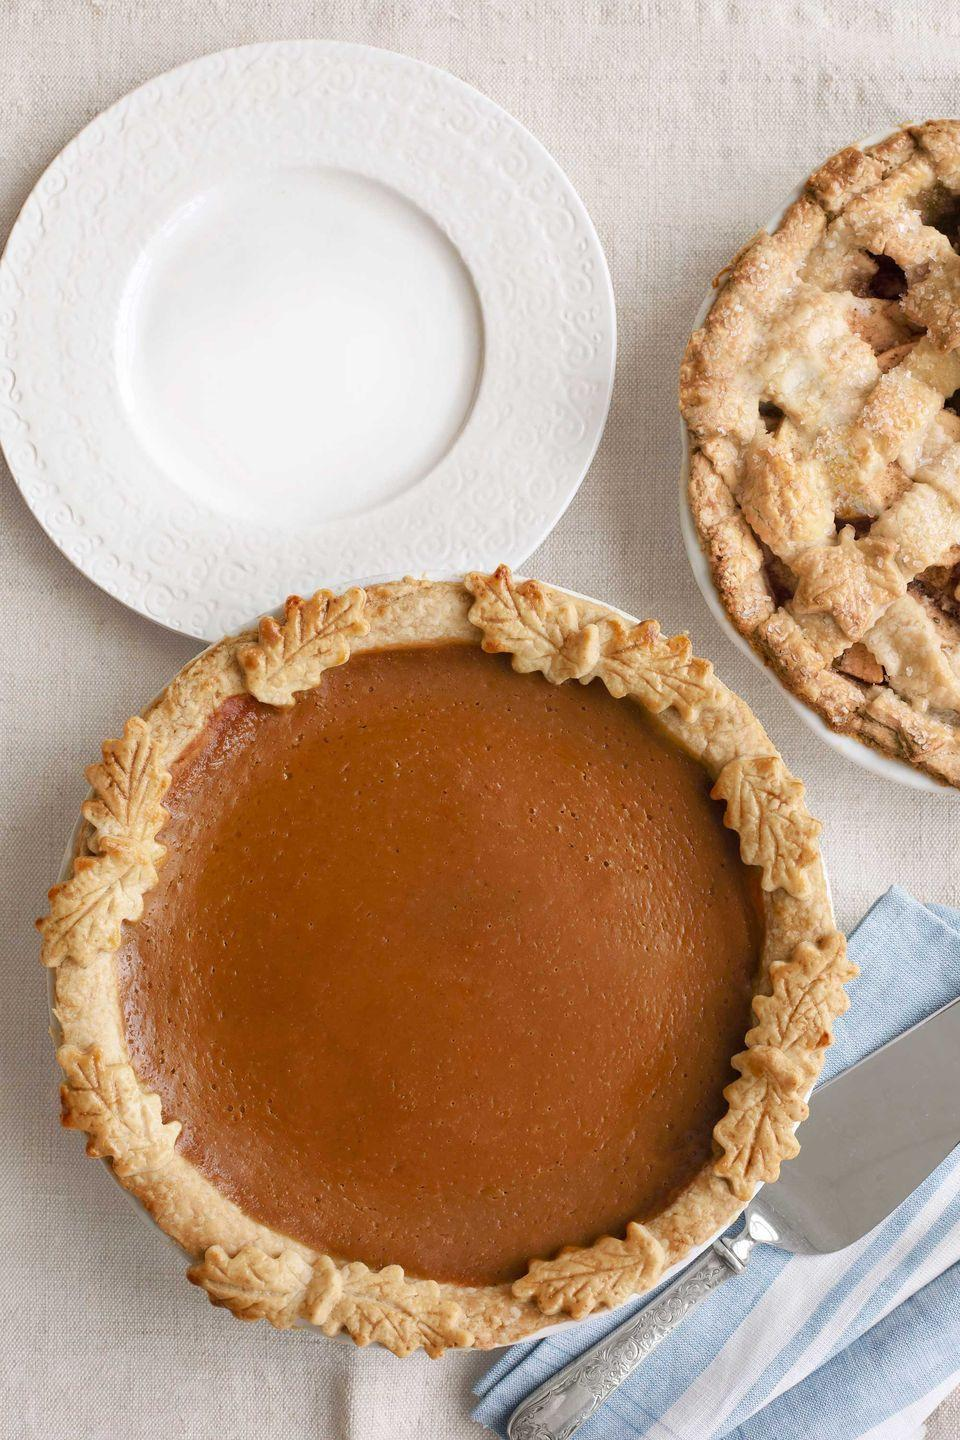 """<p>A traditional Southern dessert, this rich sweet potato pie turns fall produce into a spectacular holiday treat.<br></p><p><strong><a href=""""https://www.countryliving.com/food-drinks/recipes/a3900/sour-cream-sweet-potato-pie-recipe-clx1111/"""" rel=""""nofollow noopener"""" target=""""_blank"""" data-ylk=""""slk:Get the recipe"""" class=""""link rapid-noclick-resp"""">Get the recipe</a>.</strong></p>"""